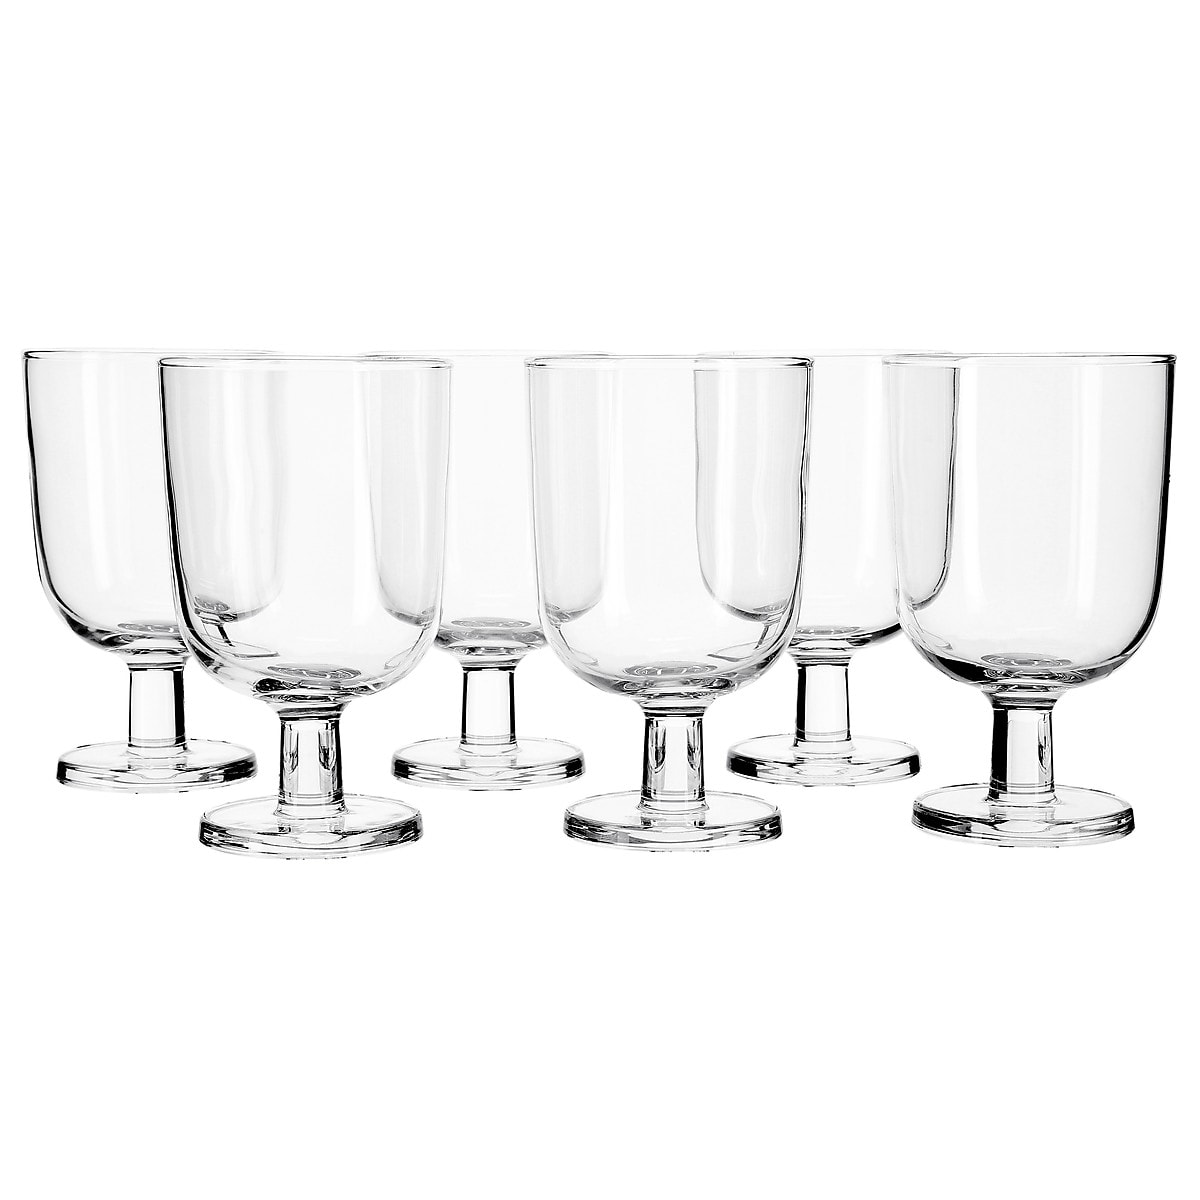 250 ml Glass Goblets 6-pack